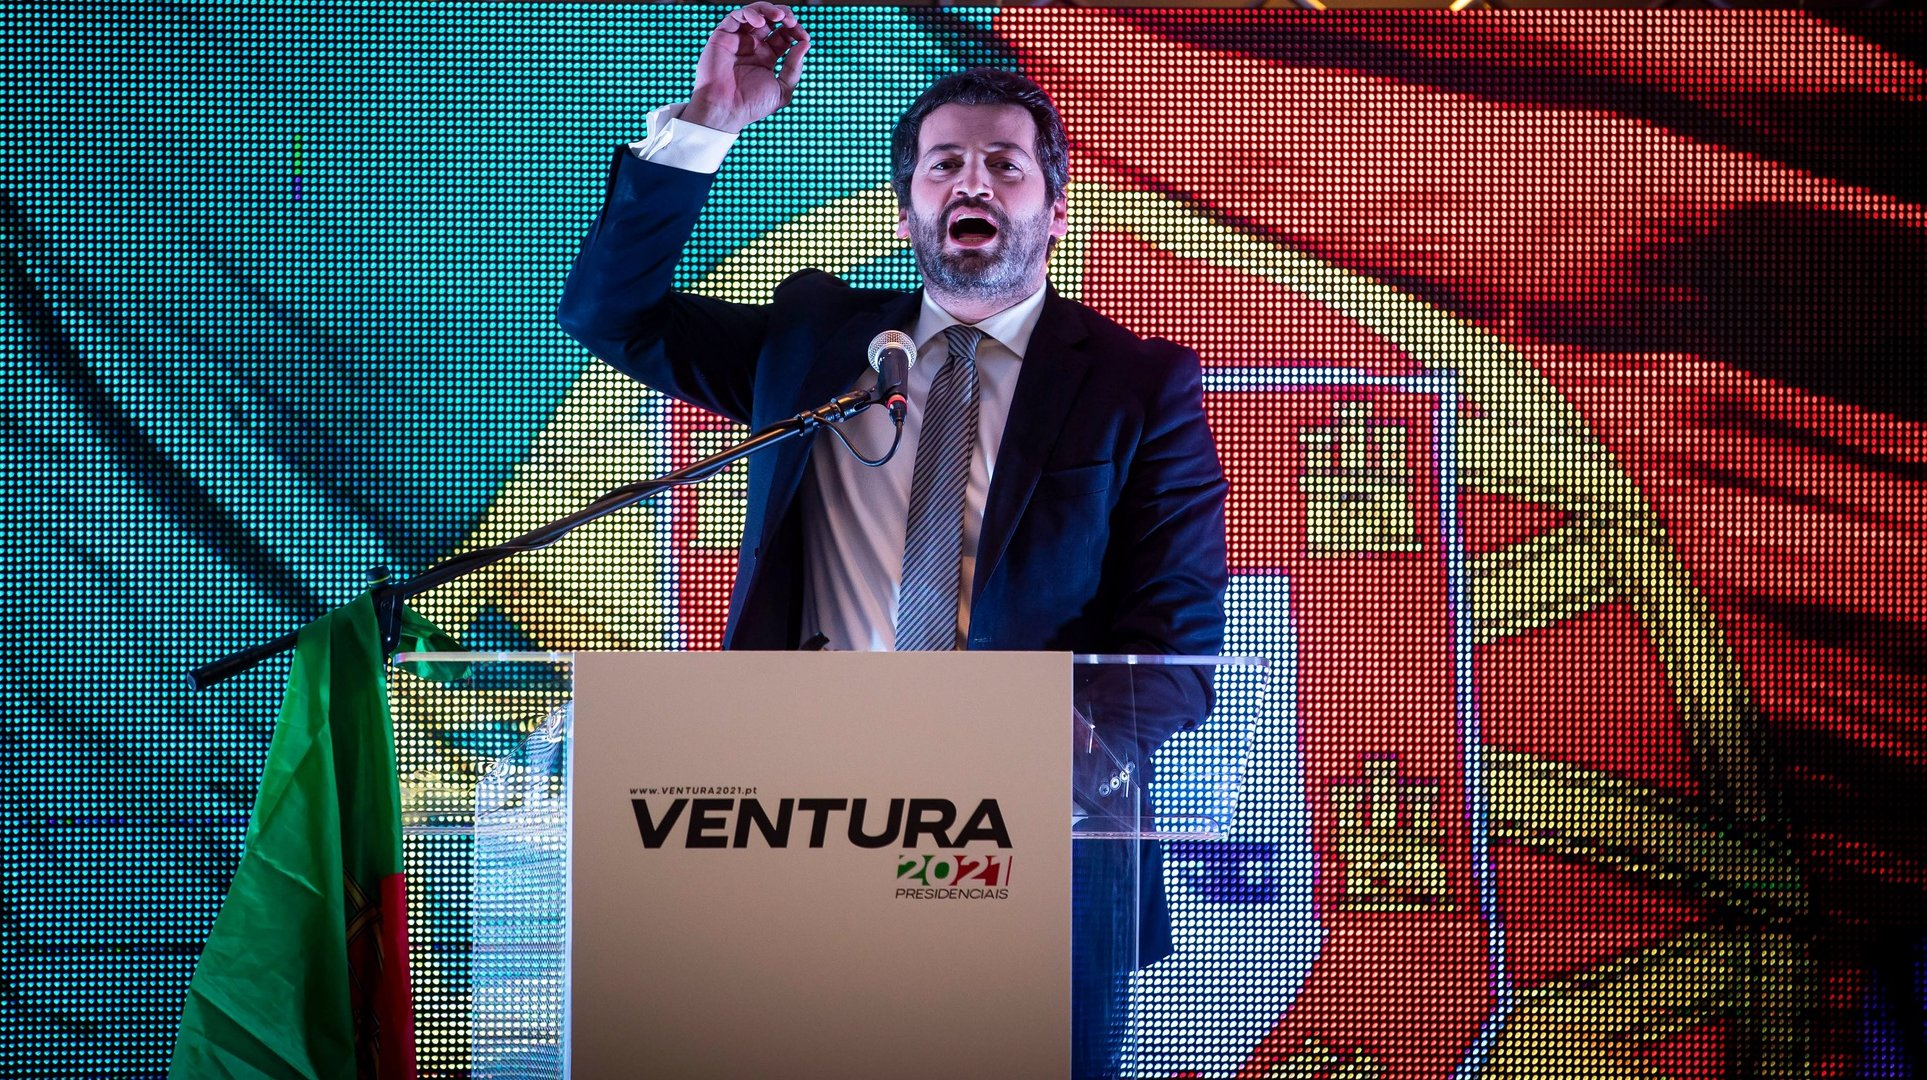 epa08963365 Portuguese presidential candidate for CHEGA party, Andre Ventura (C), addresses supporters after learning the results of the presidential election, at a Hotel in Lisbon, Portugal, 24 January 2021.  EPA/JOSE SENA GOULAO